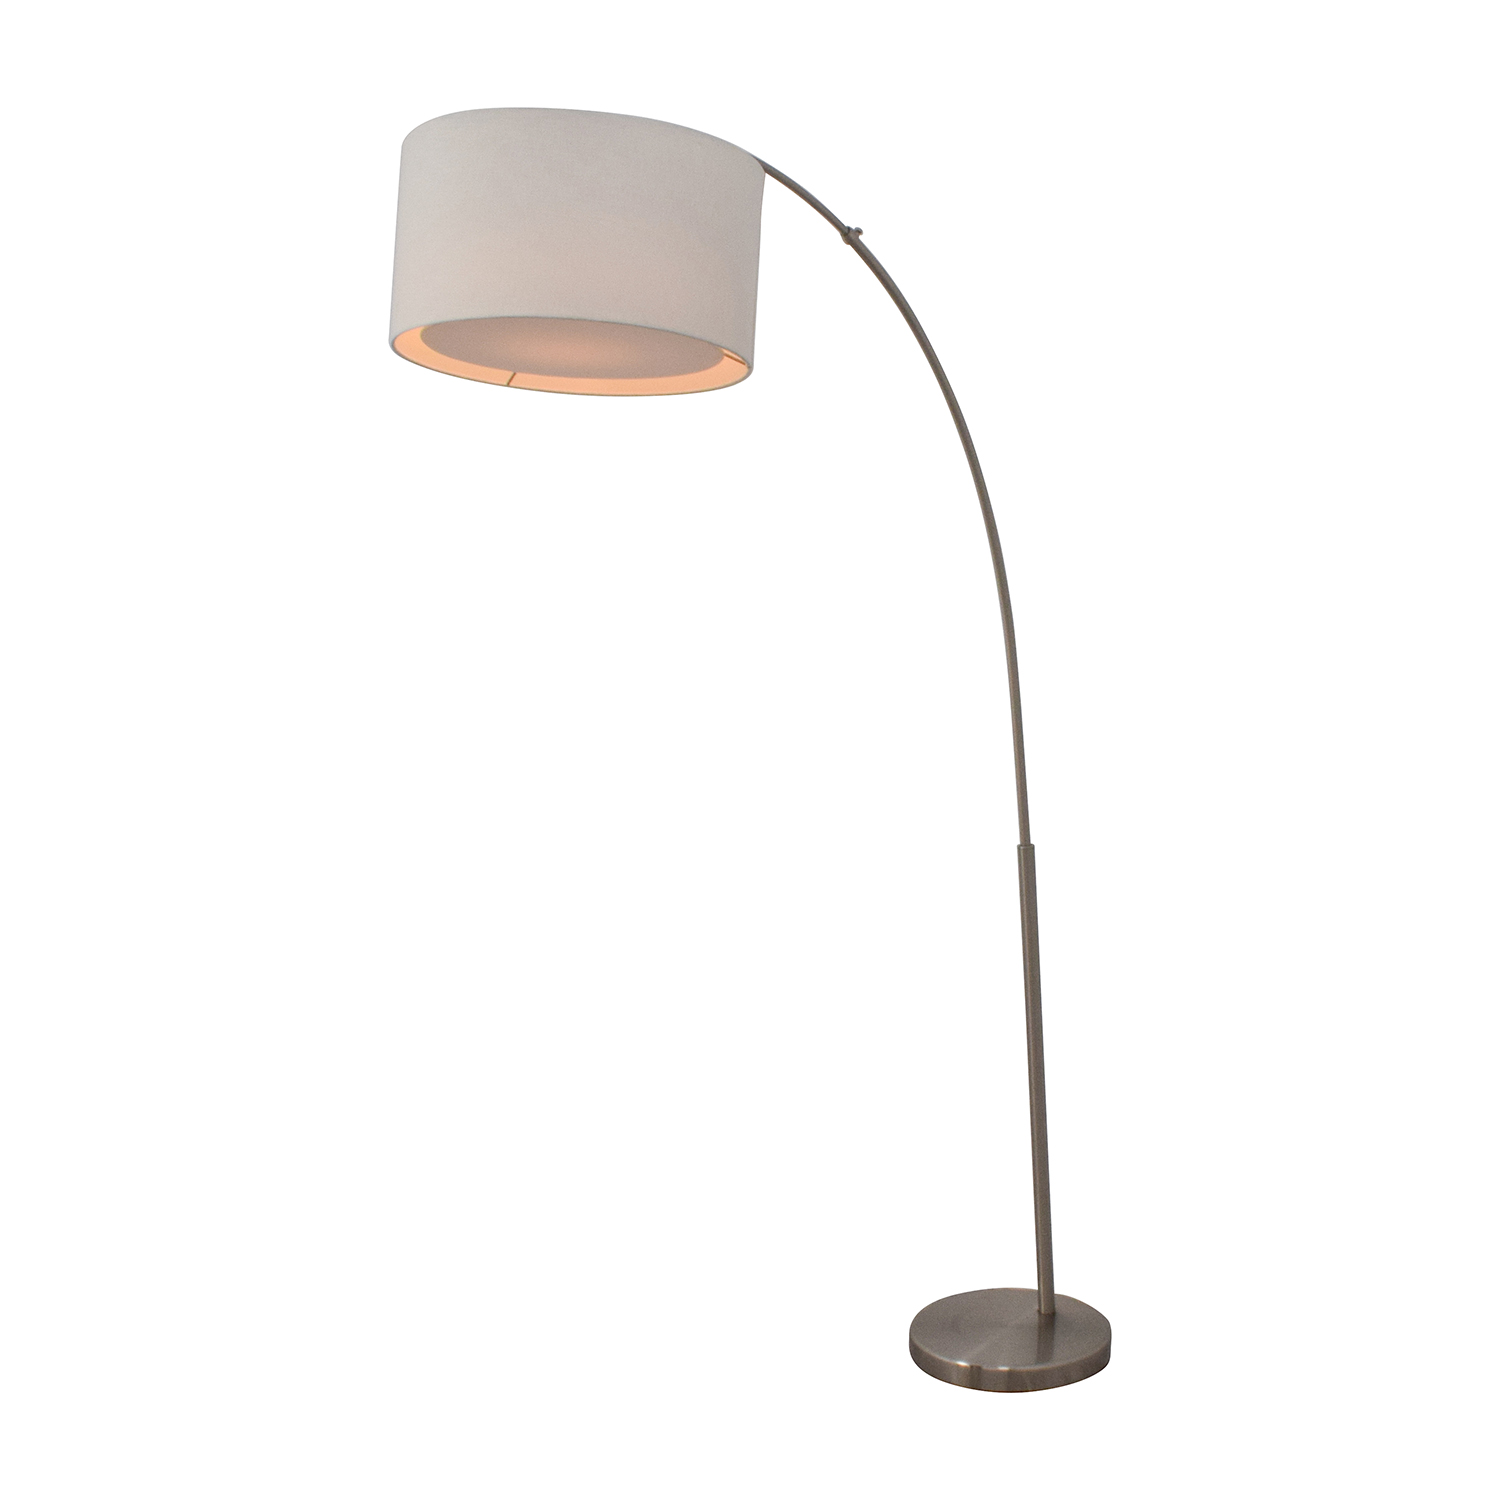 side arch arc table best img pottery big lamp warehouse george floor barn chrome pendant dipper georgetown dining bulbs cheap kovacs lamps polished